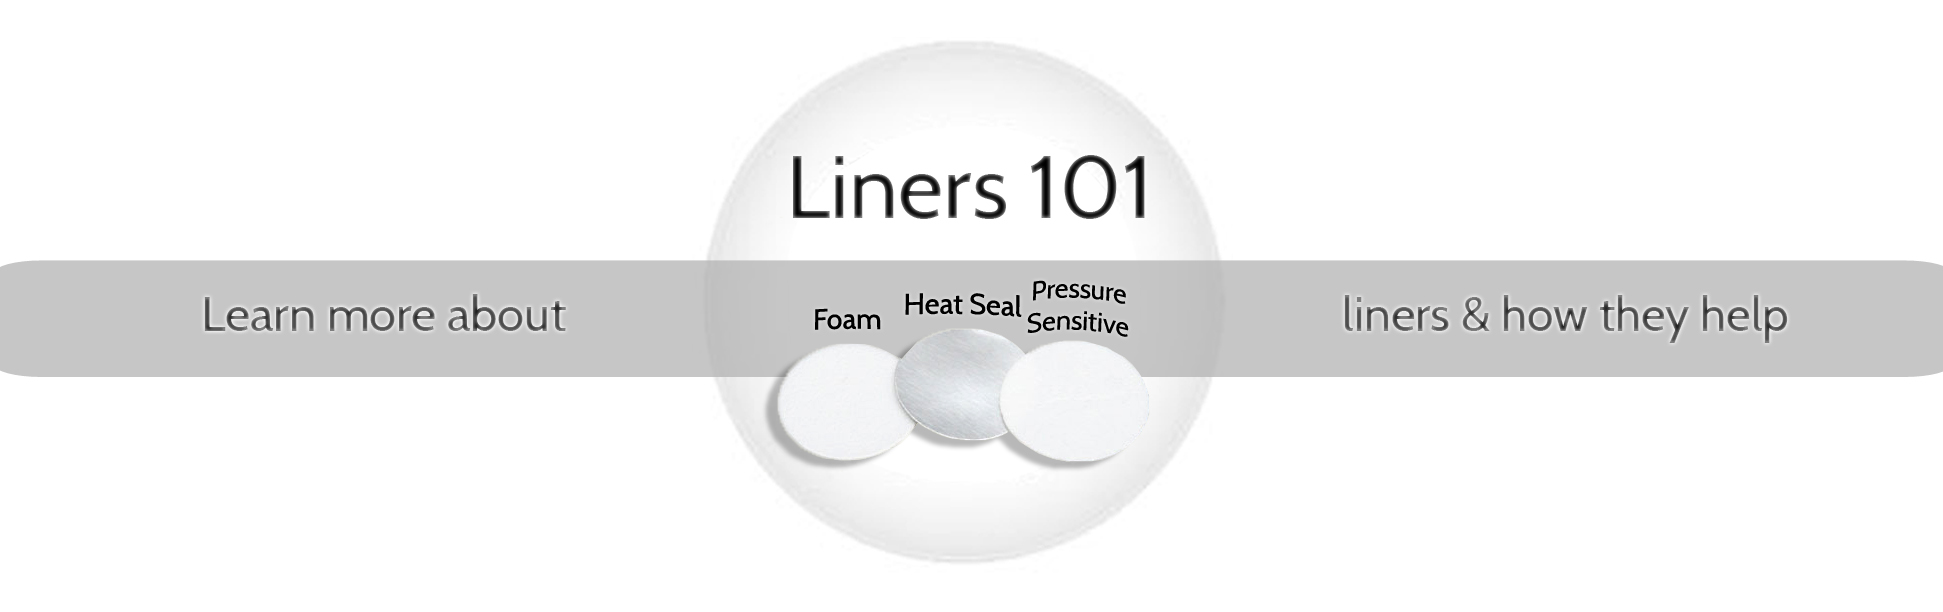 new-liners-101-banner-1-edited-13-cap-size.jpg